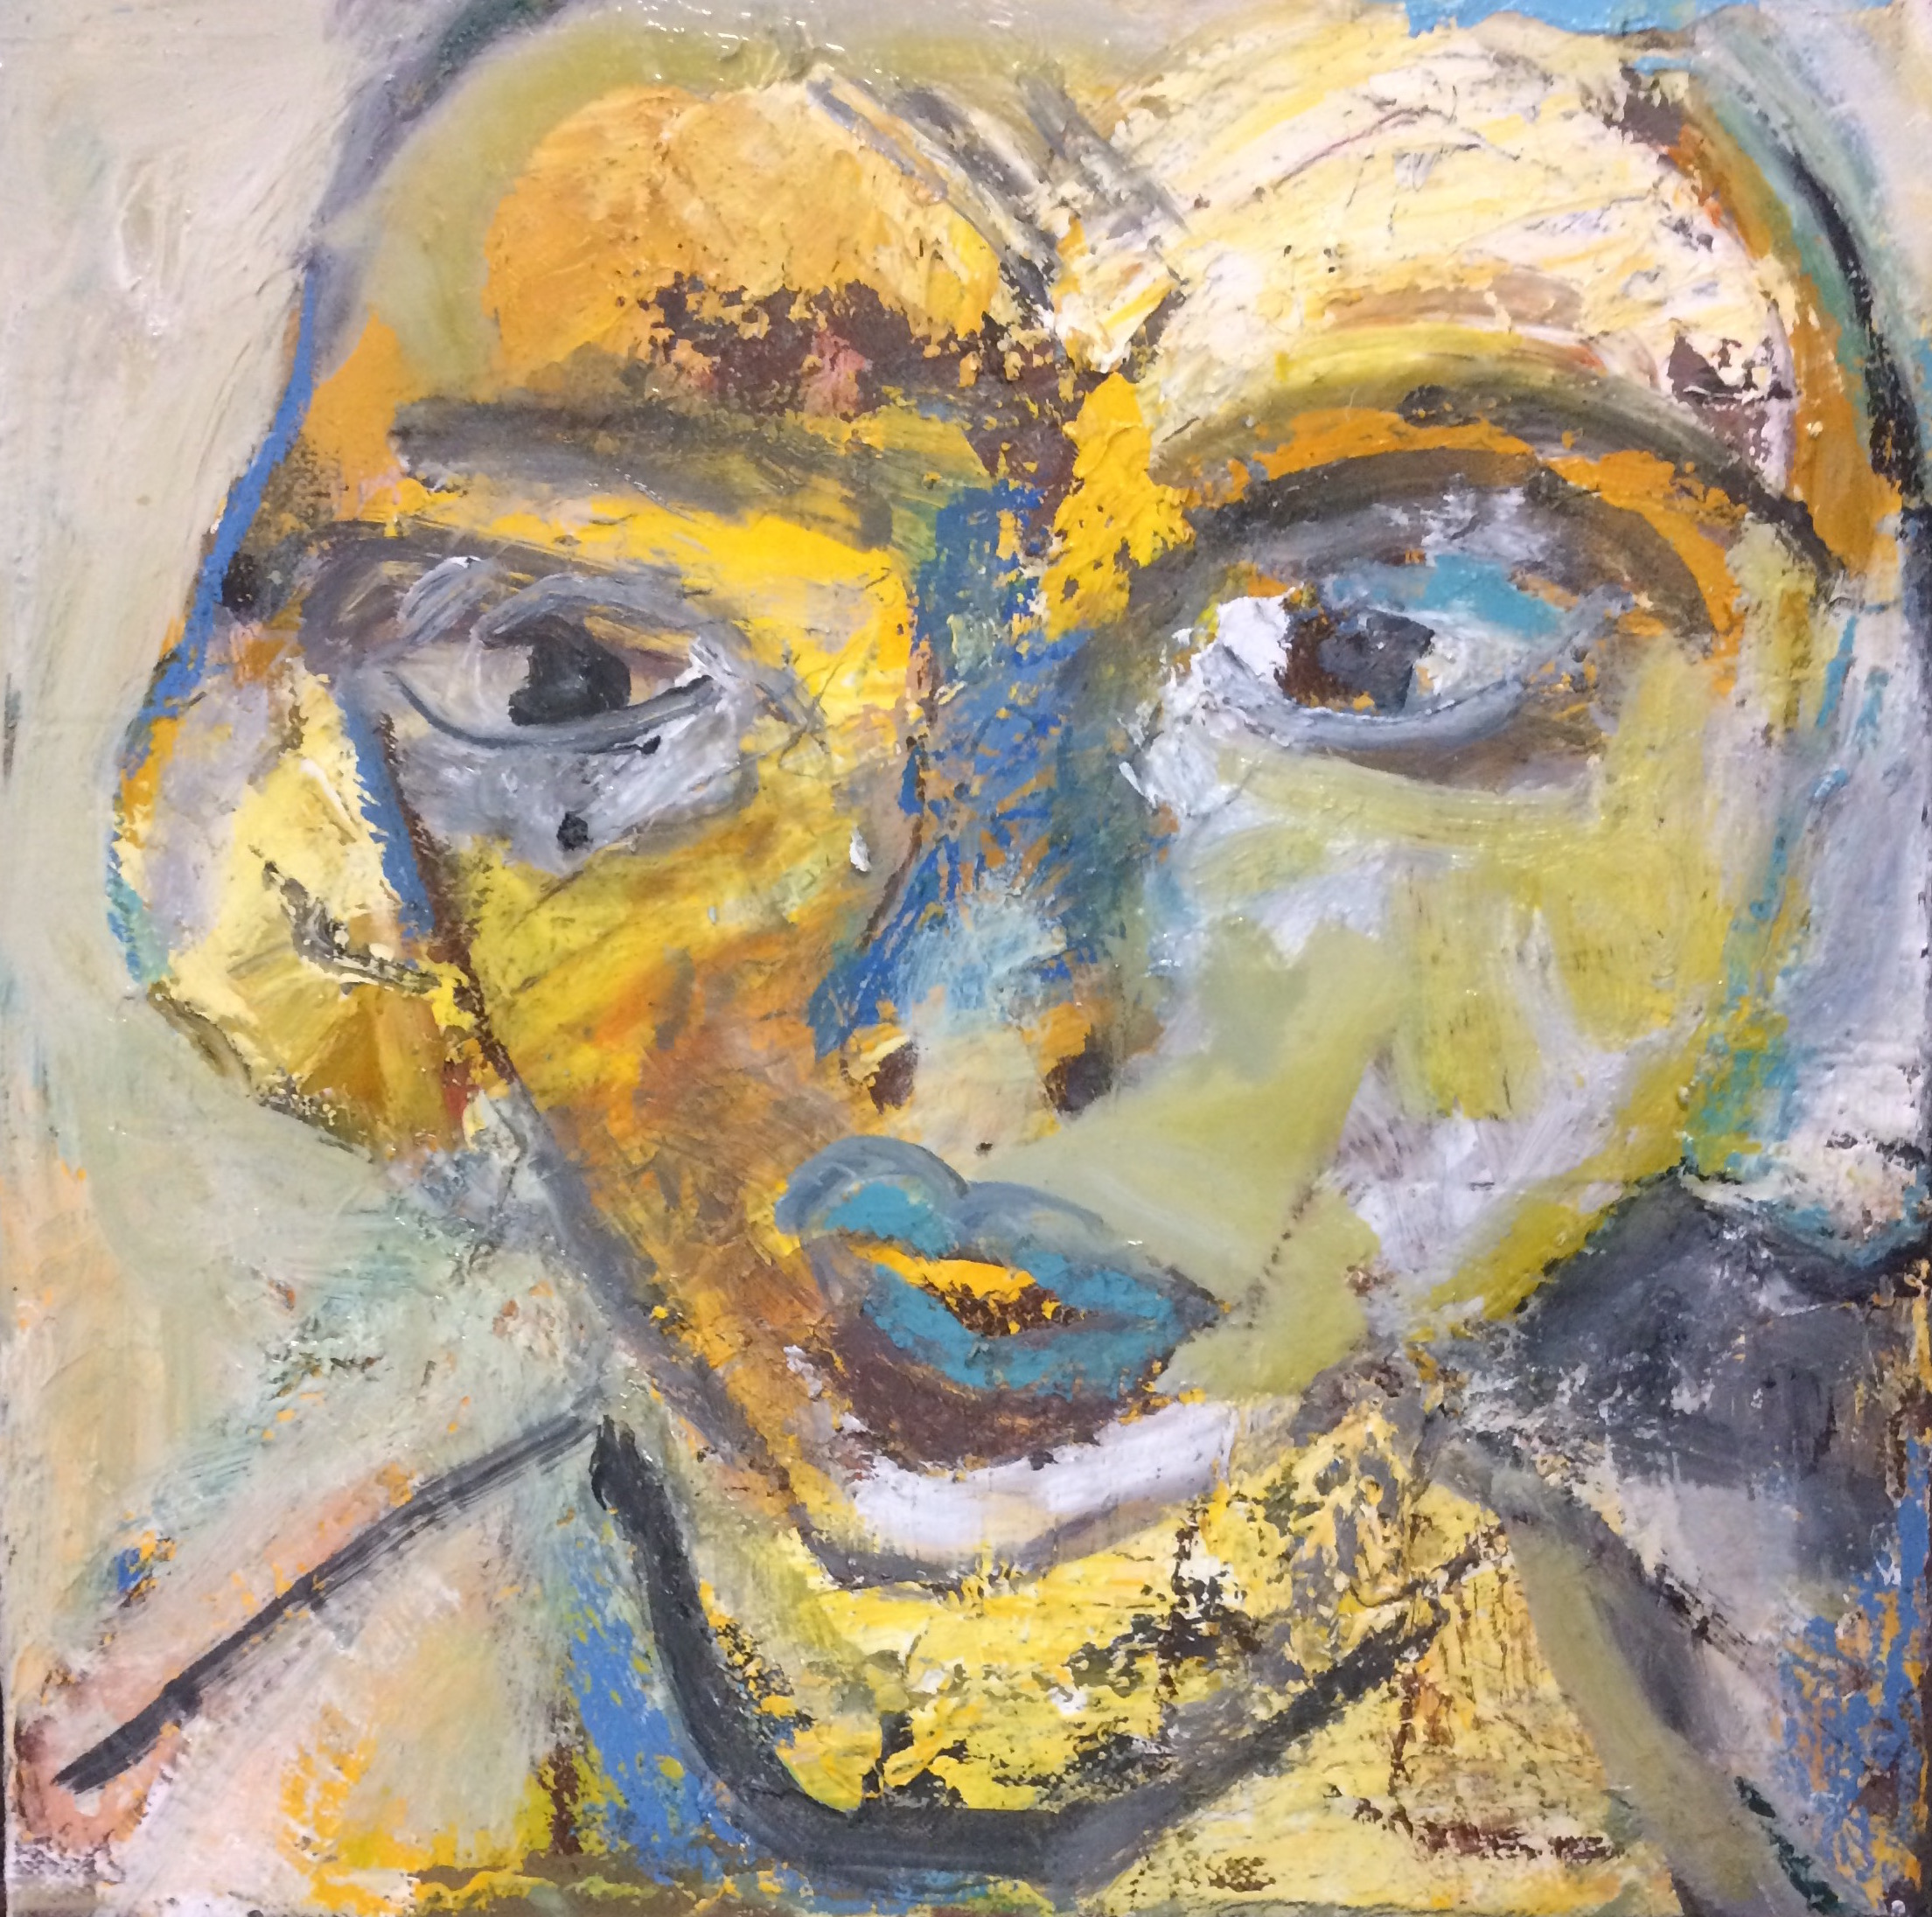 Girl dreaming oil on canvas 31 x 31cm